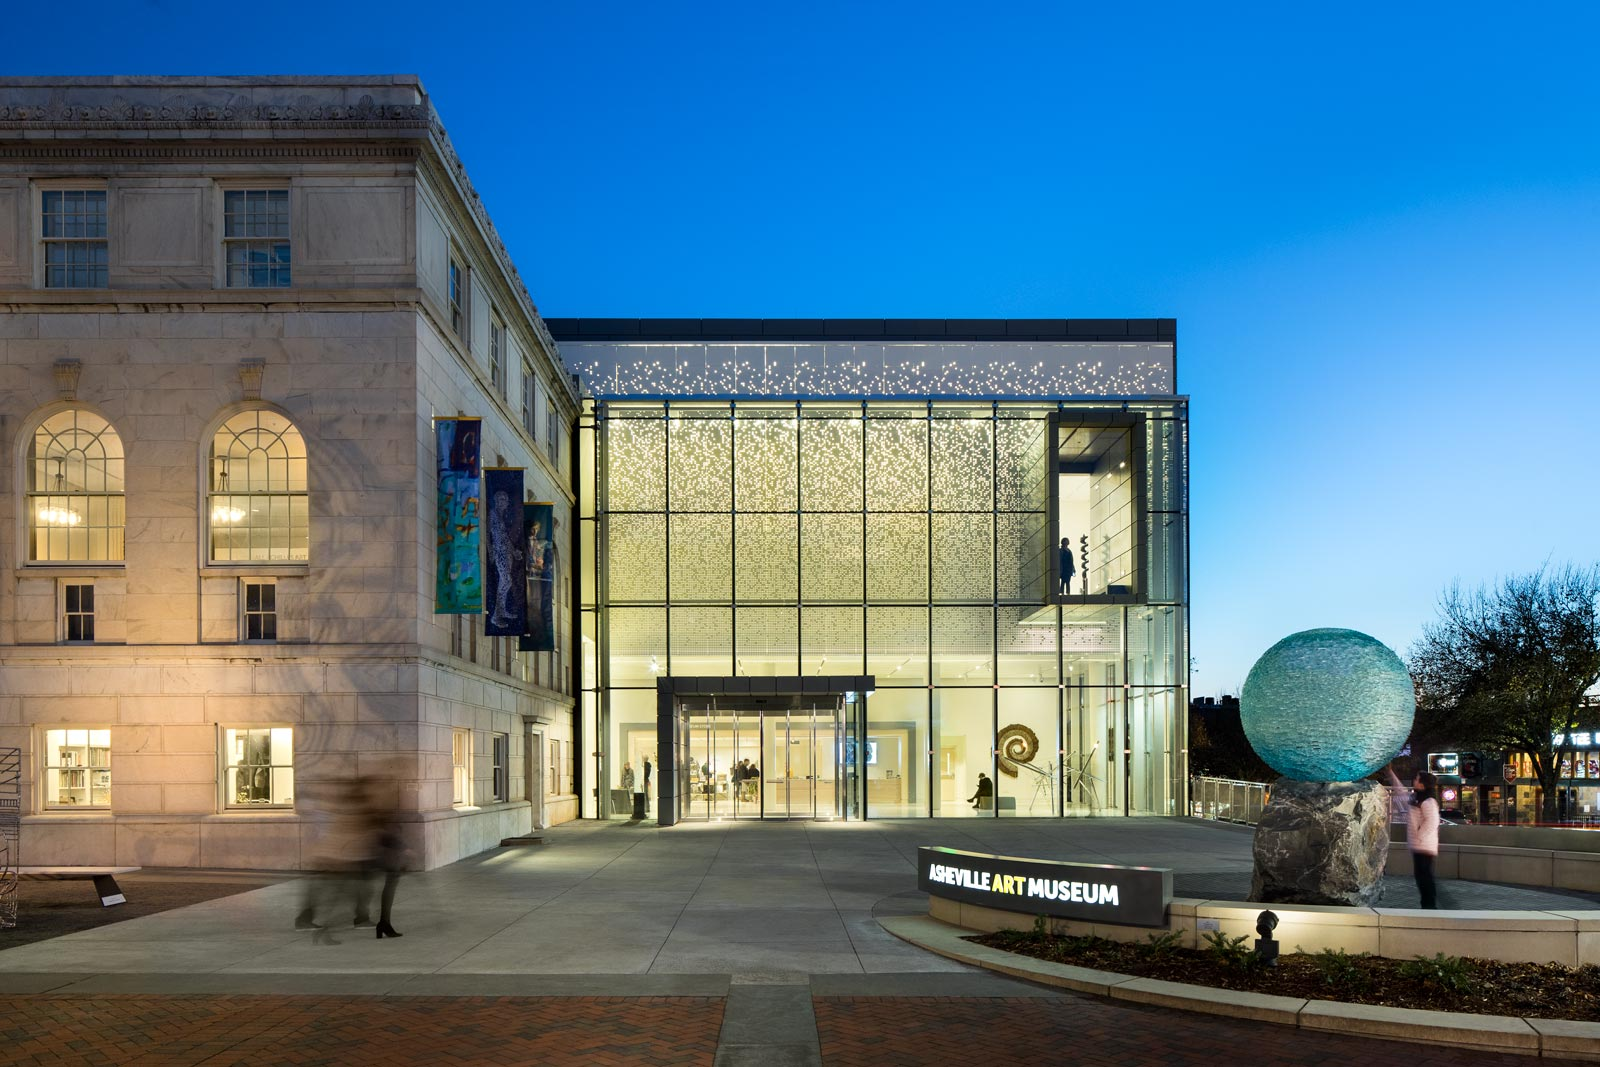 Asheville Art Museum exterior with clear blue evening sky and signs illuminated.